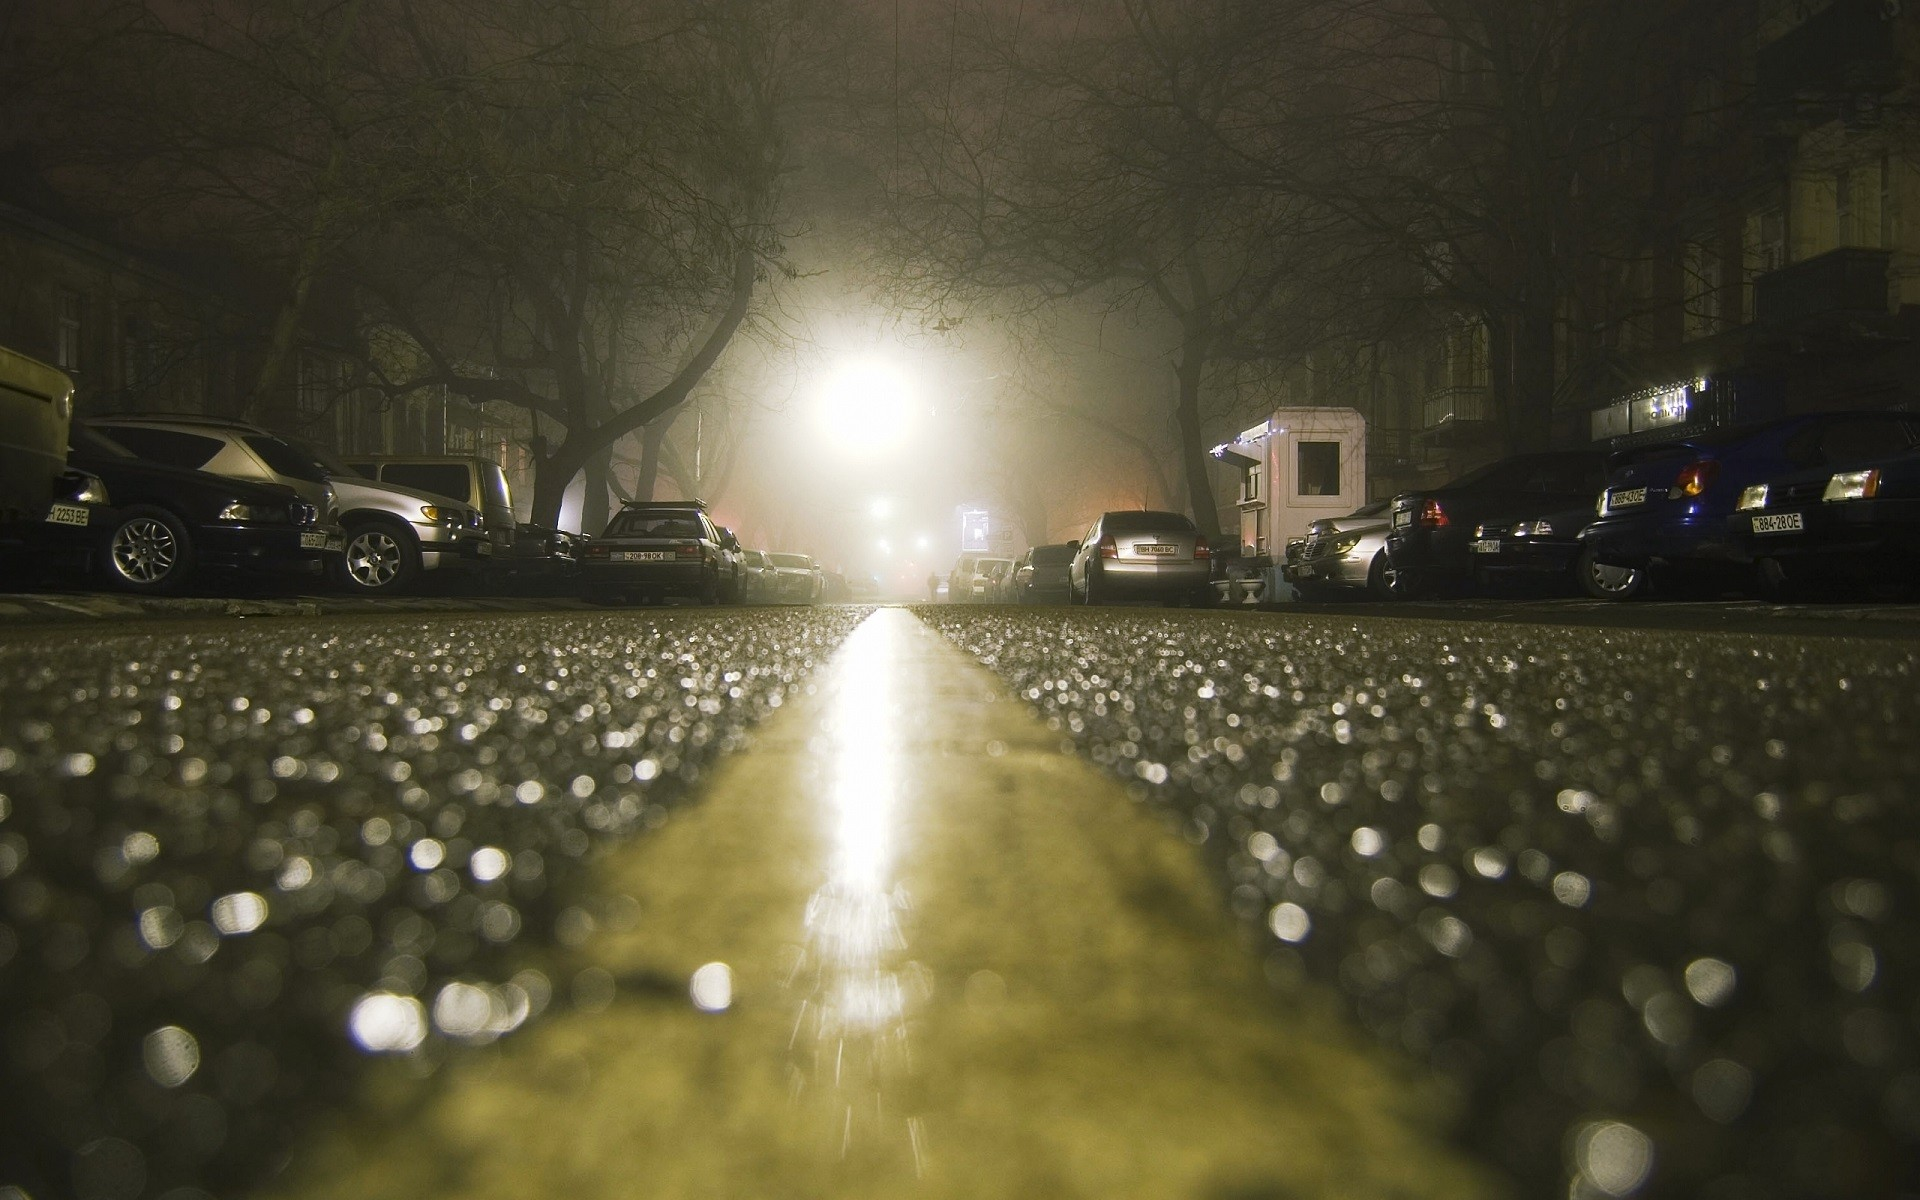 Car 5760x1080 Wallpaper City Road Rain Wet Depth Of Field Lights Car Night